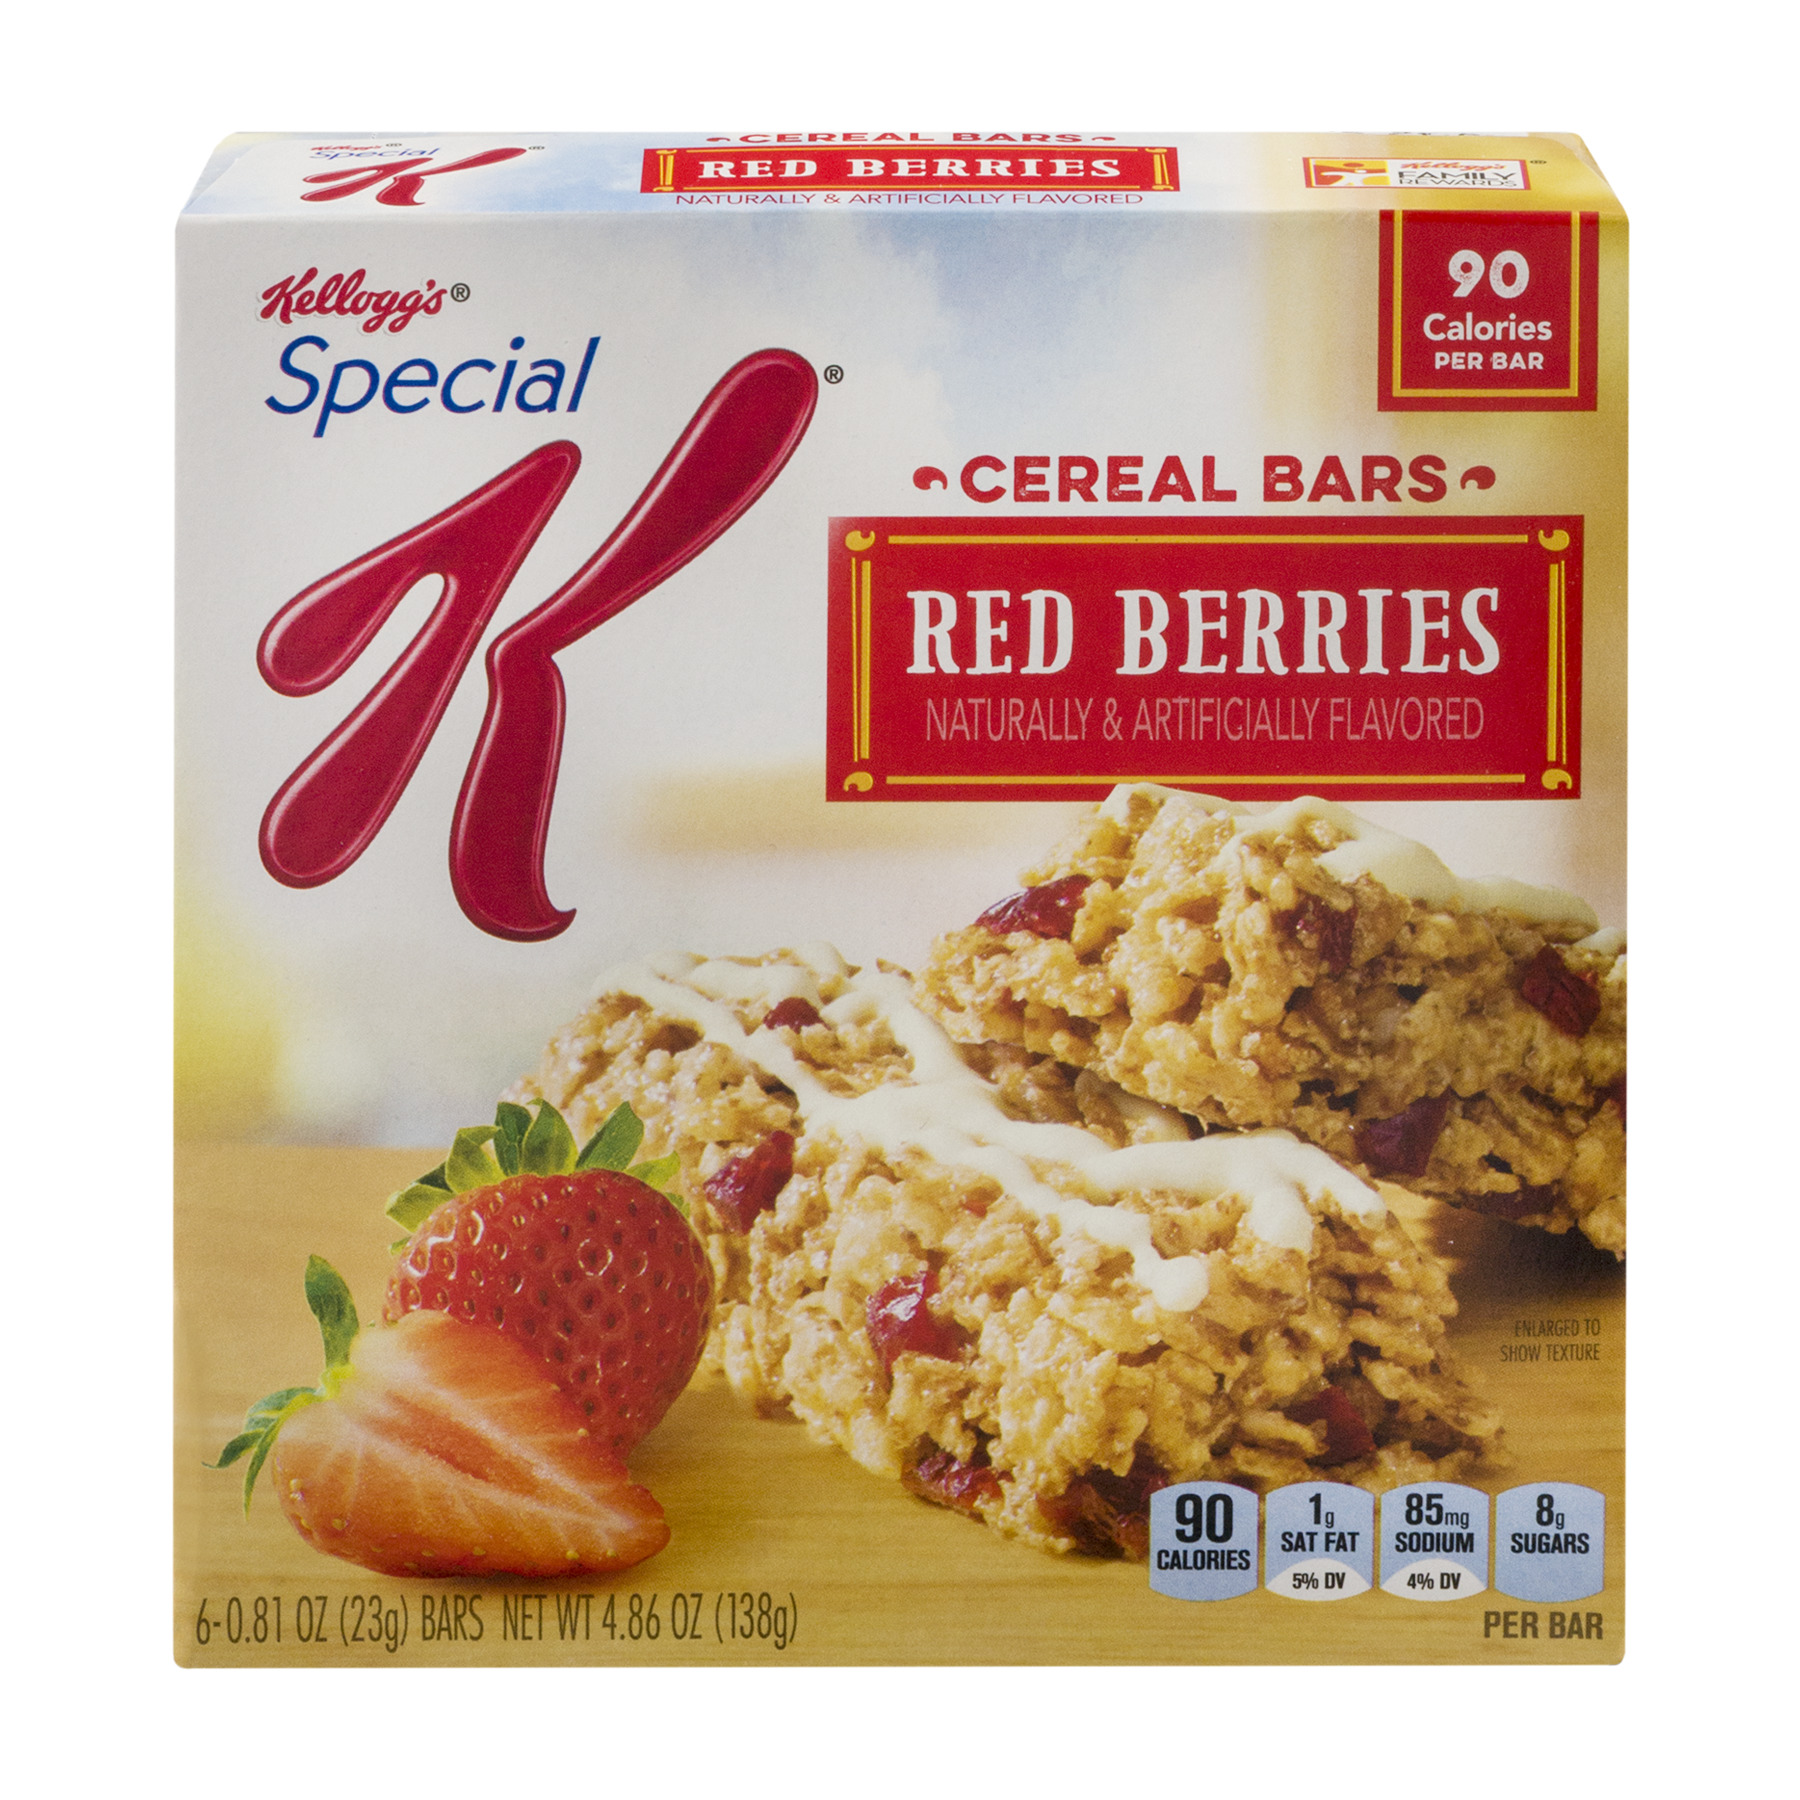 Kellogg's Special K Cereal Bars Red Berries - 6 CT4.86 OZ